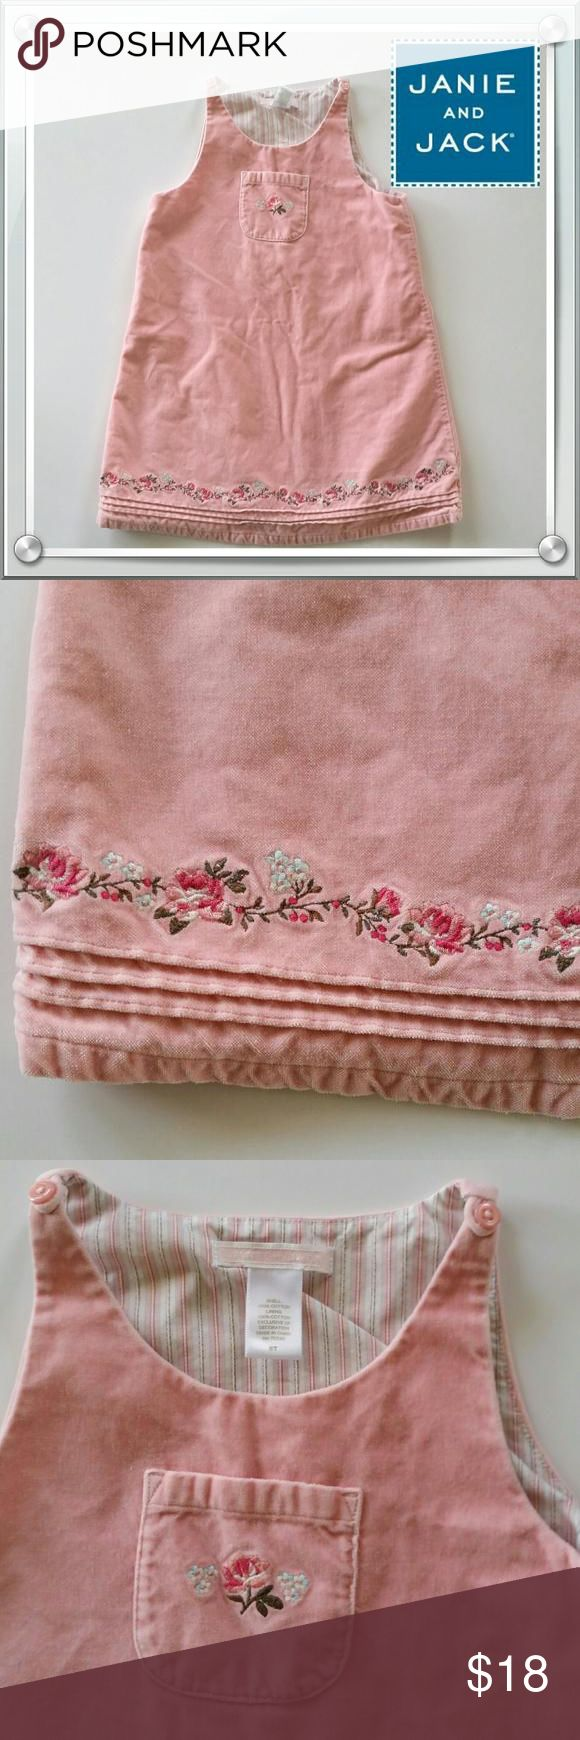 Janie and Jack soft pink jumper Pink jumper with such soft material and beautiful embroidered flowers on front pocket and along hem. Janie and Jack Dresses